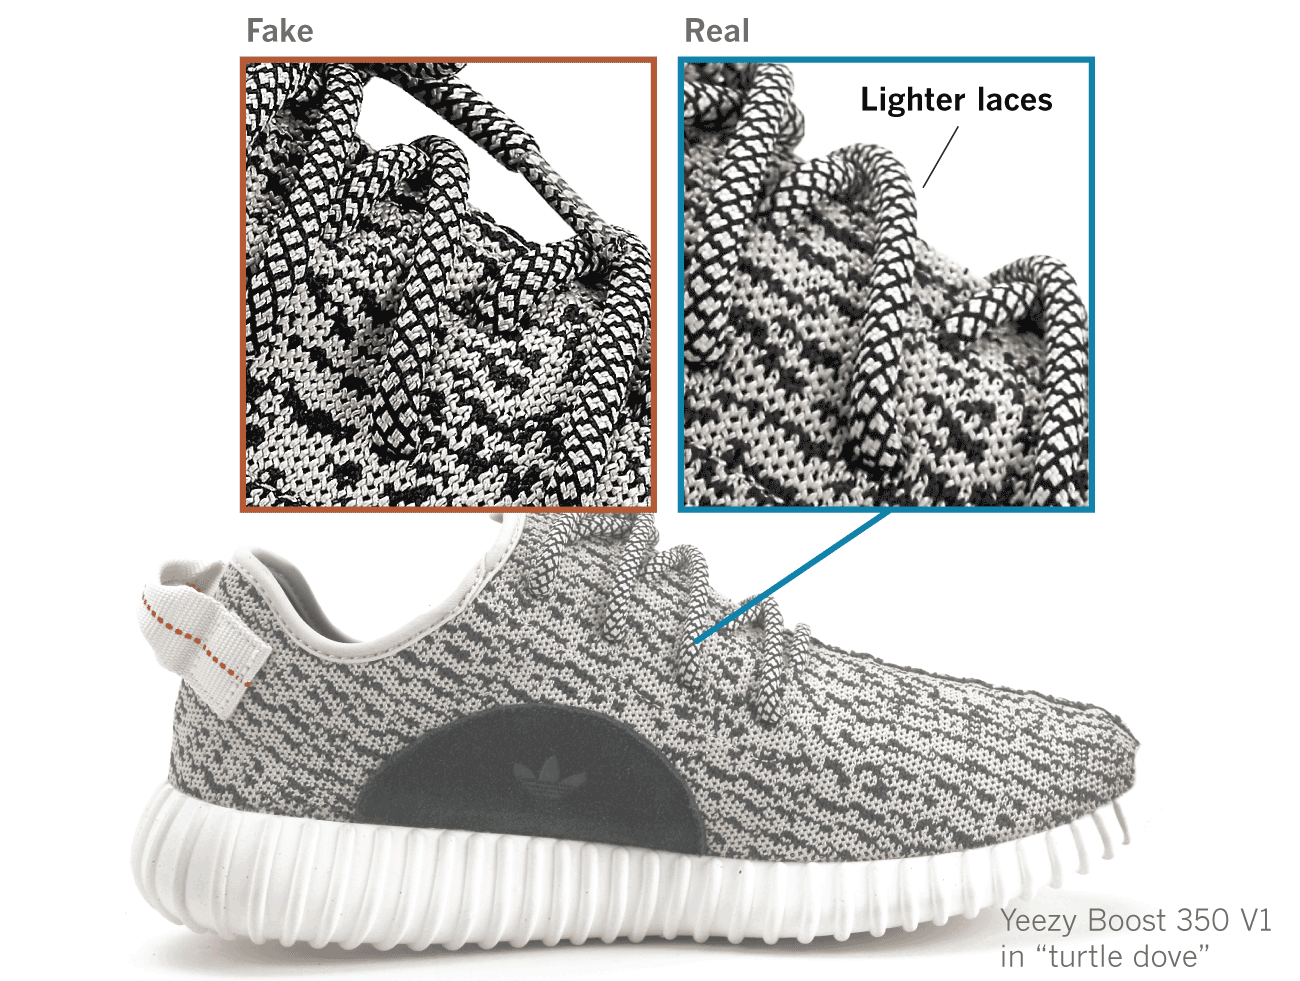 fbcec820479e ... Adidas Yeezy has become so sophisticated that even some of the most  astute fans can t tell the difference between a well-made fake and the real  deal.